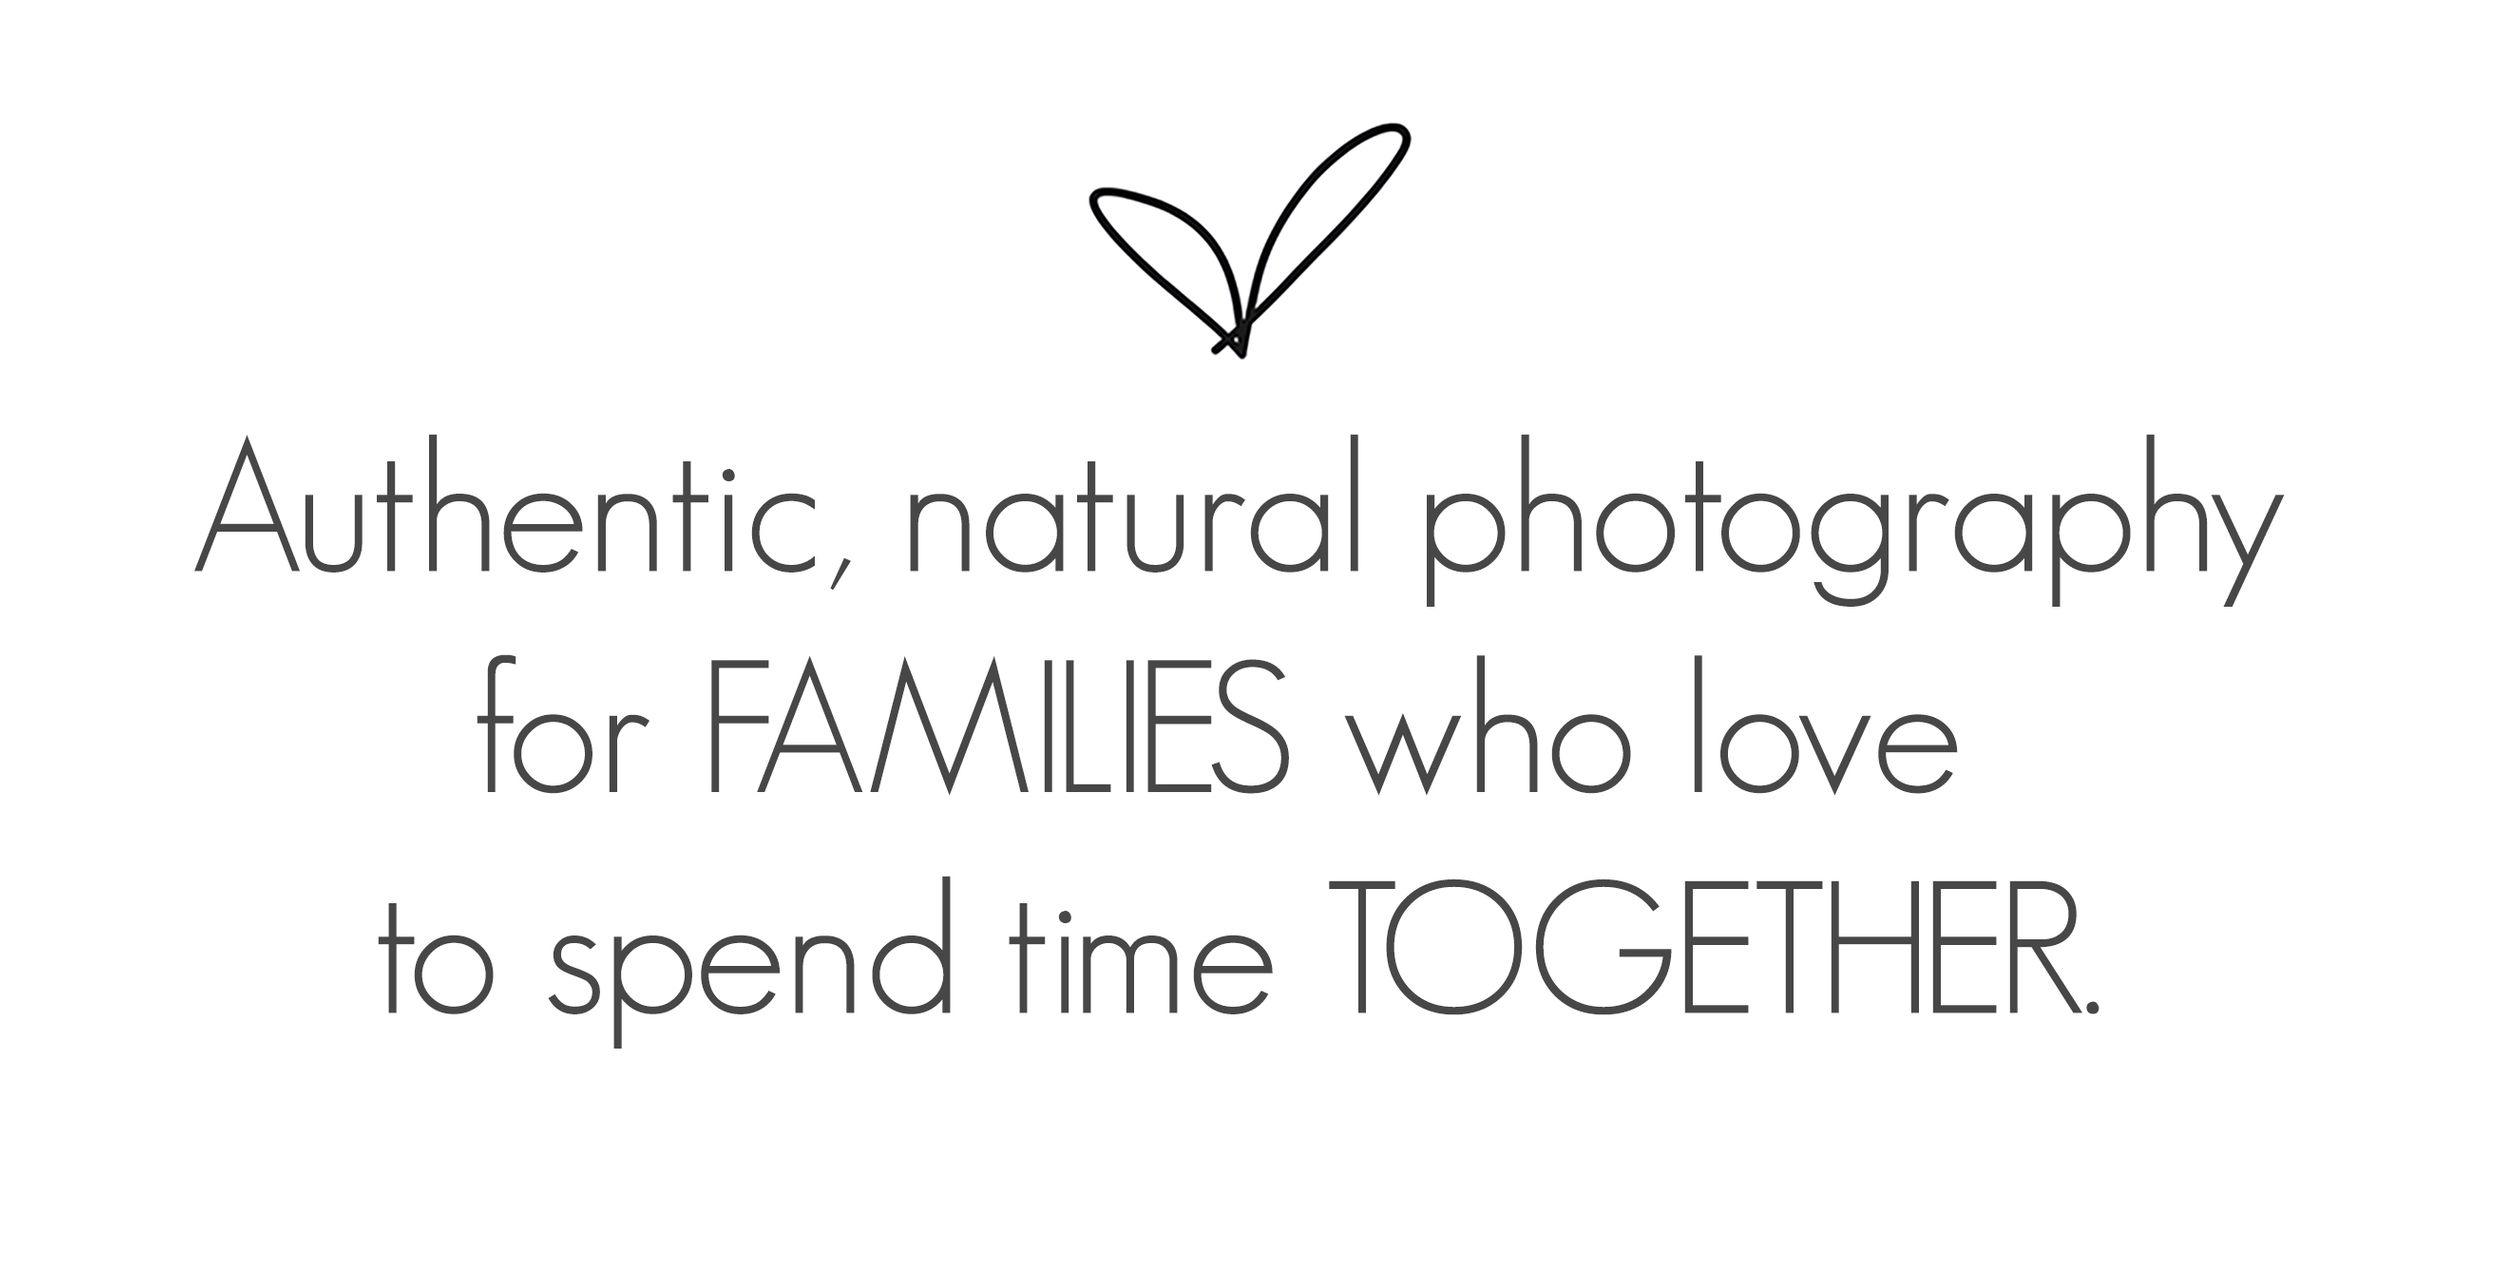 Authentic, natural photography for families who love to spend time together.